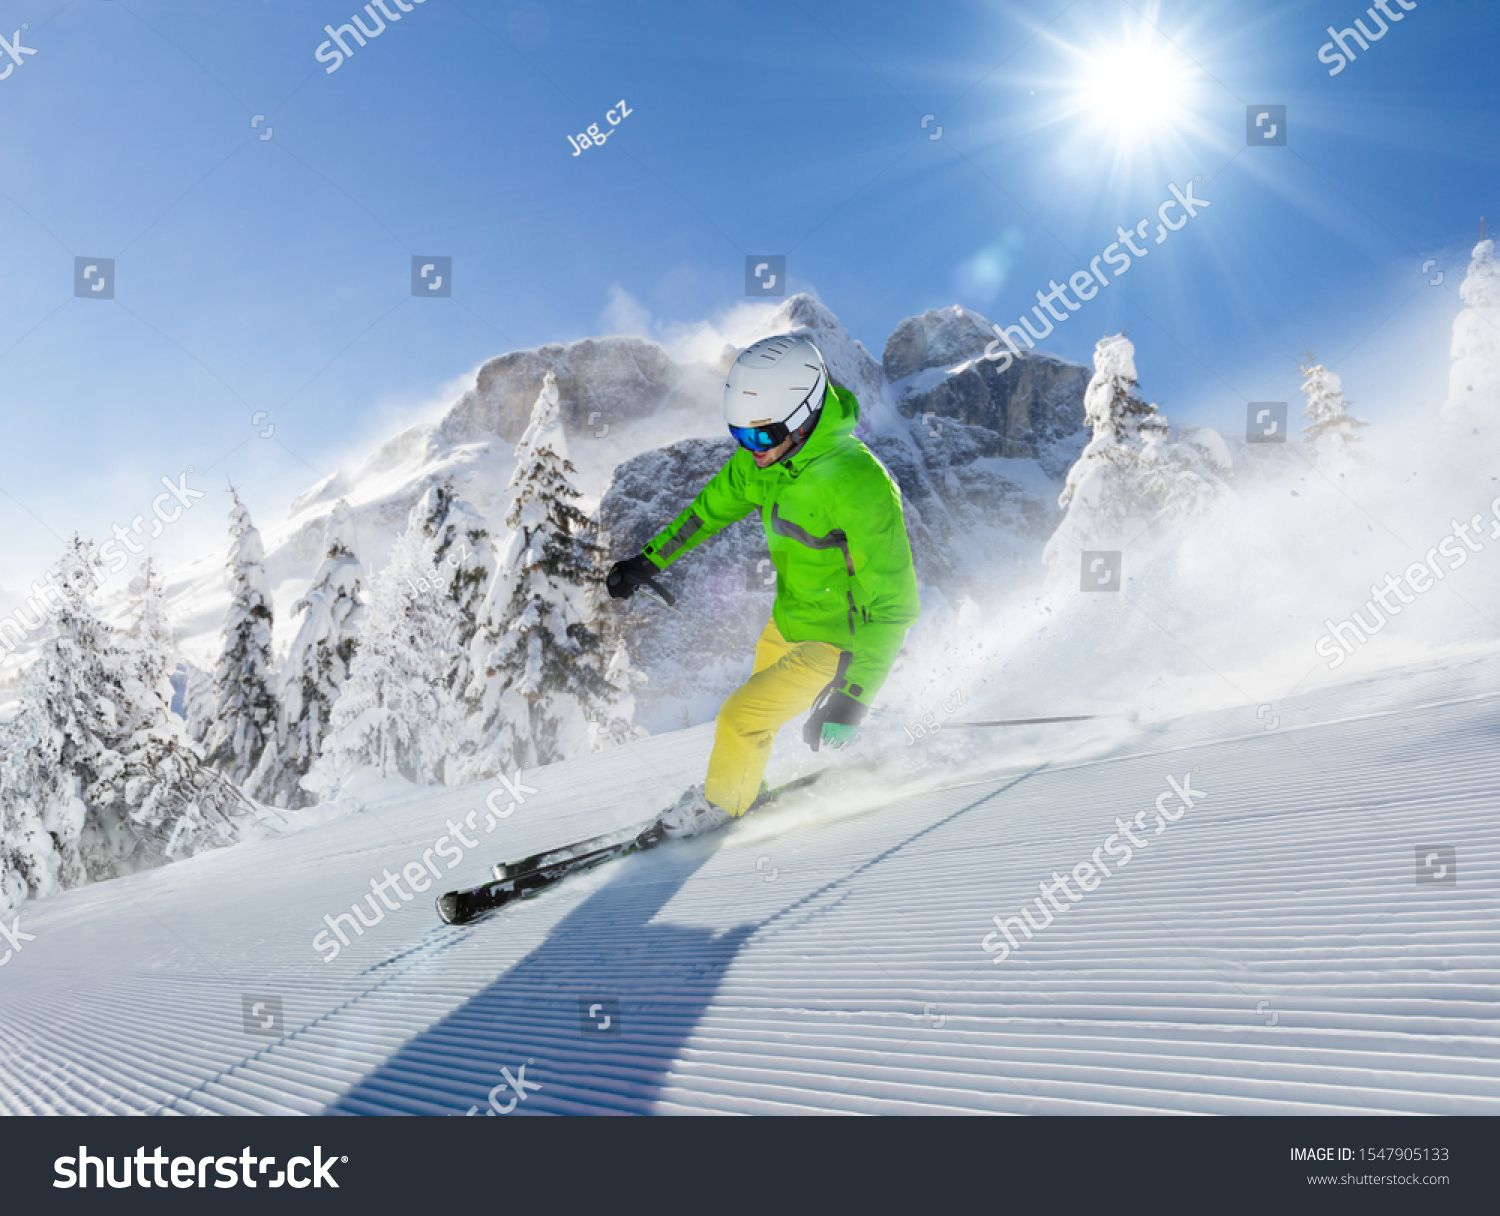 Young Man Skier Running Down The Slope In Alpine Mountains Winter Sport And Recreation Leasure Outdoor Activities Ad Winter Sports Skier Alpine Mountain